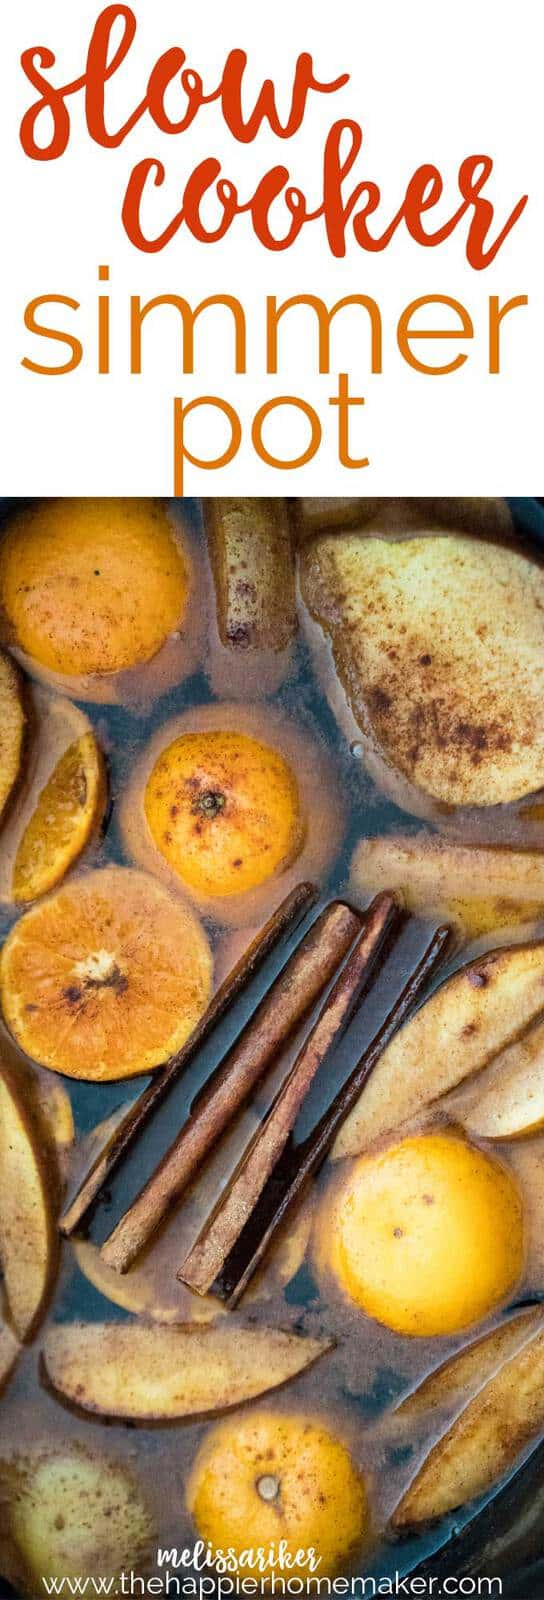 Simmer pots, or stovetop potpourri, can be made in the crockpot too! This Autumn Simmer Pot Recipe is an easy, chemical free way to scent your home using your slow cooker!